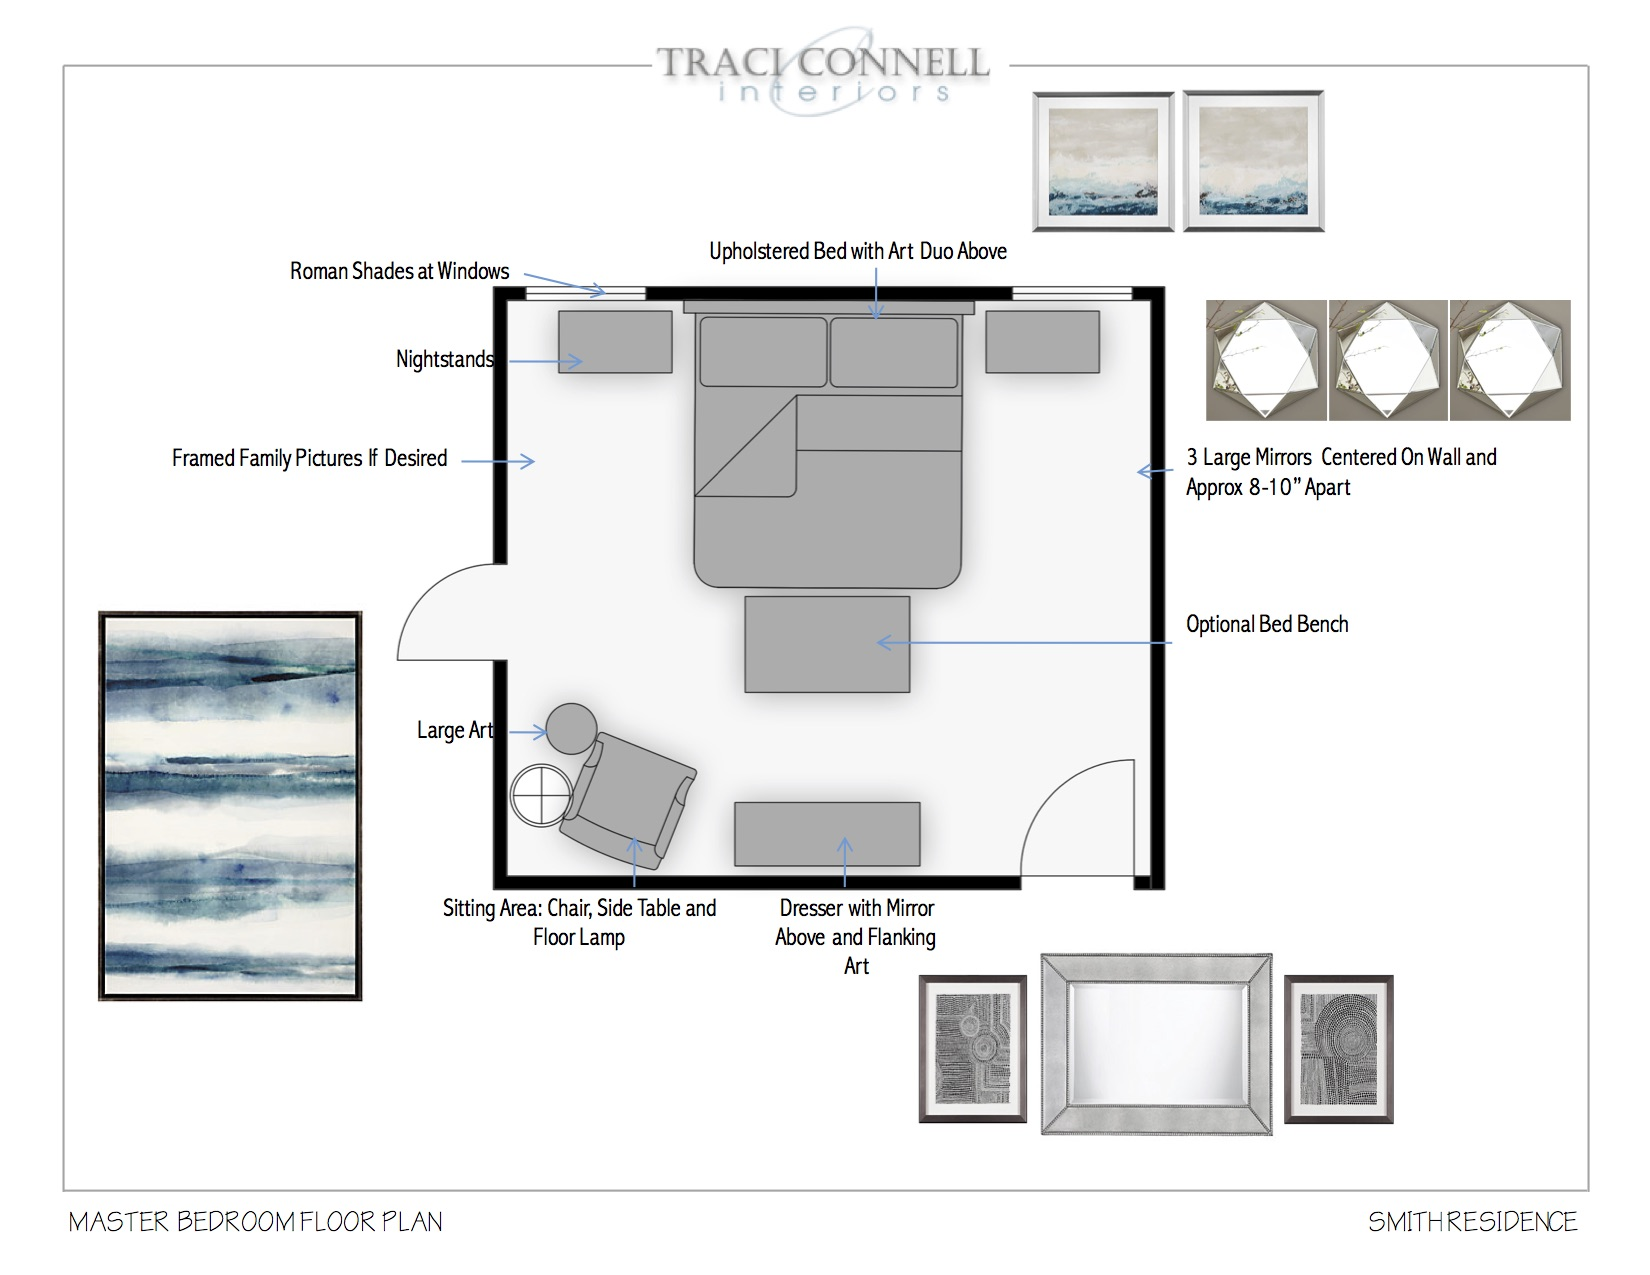 online interior design services traci connell interiors